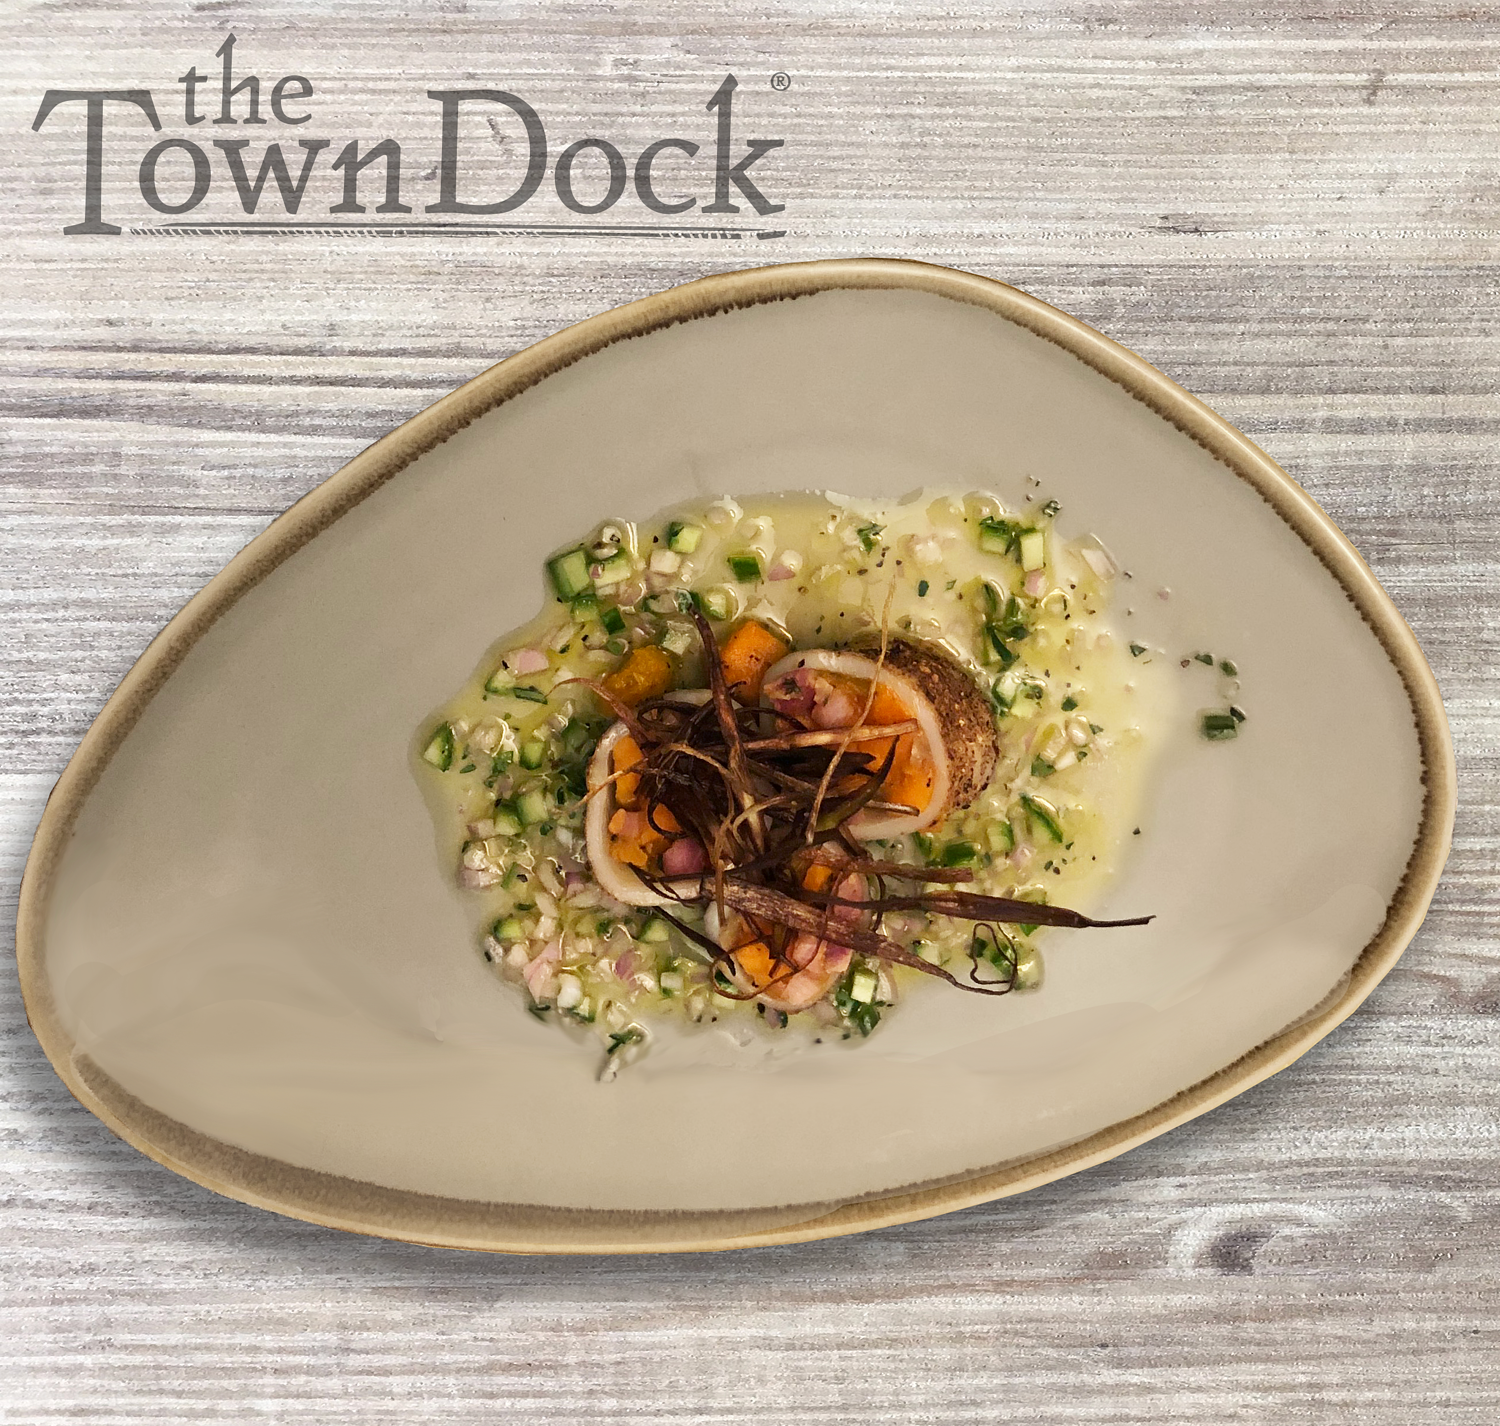 Recipes Inspirations The Town Dock This product of usa is perfect for a new application we're calling california popcorn calamari. it makes for an interesting application consumers love! recipes inspirations the town dock